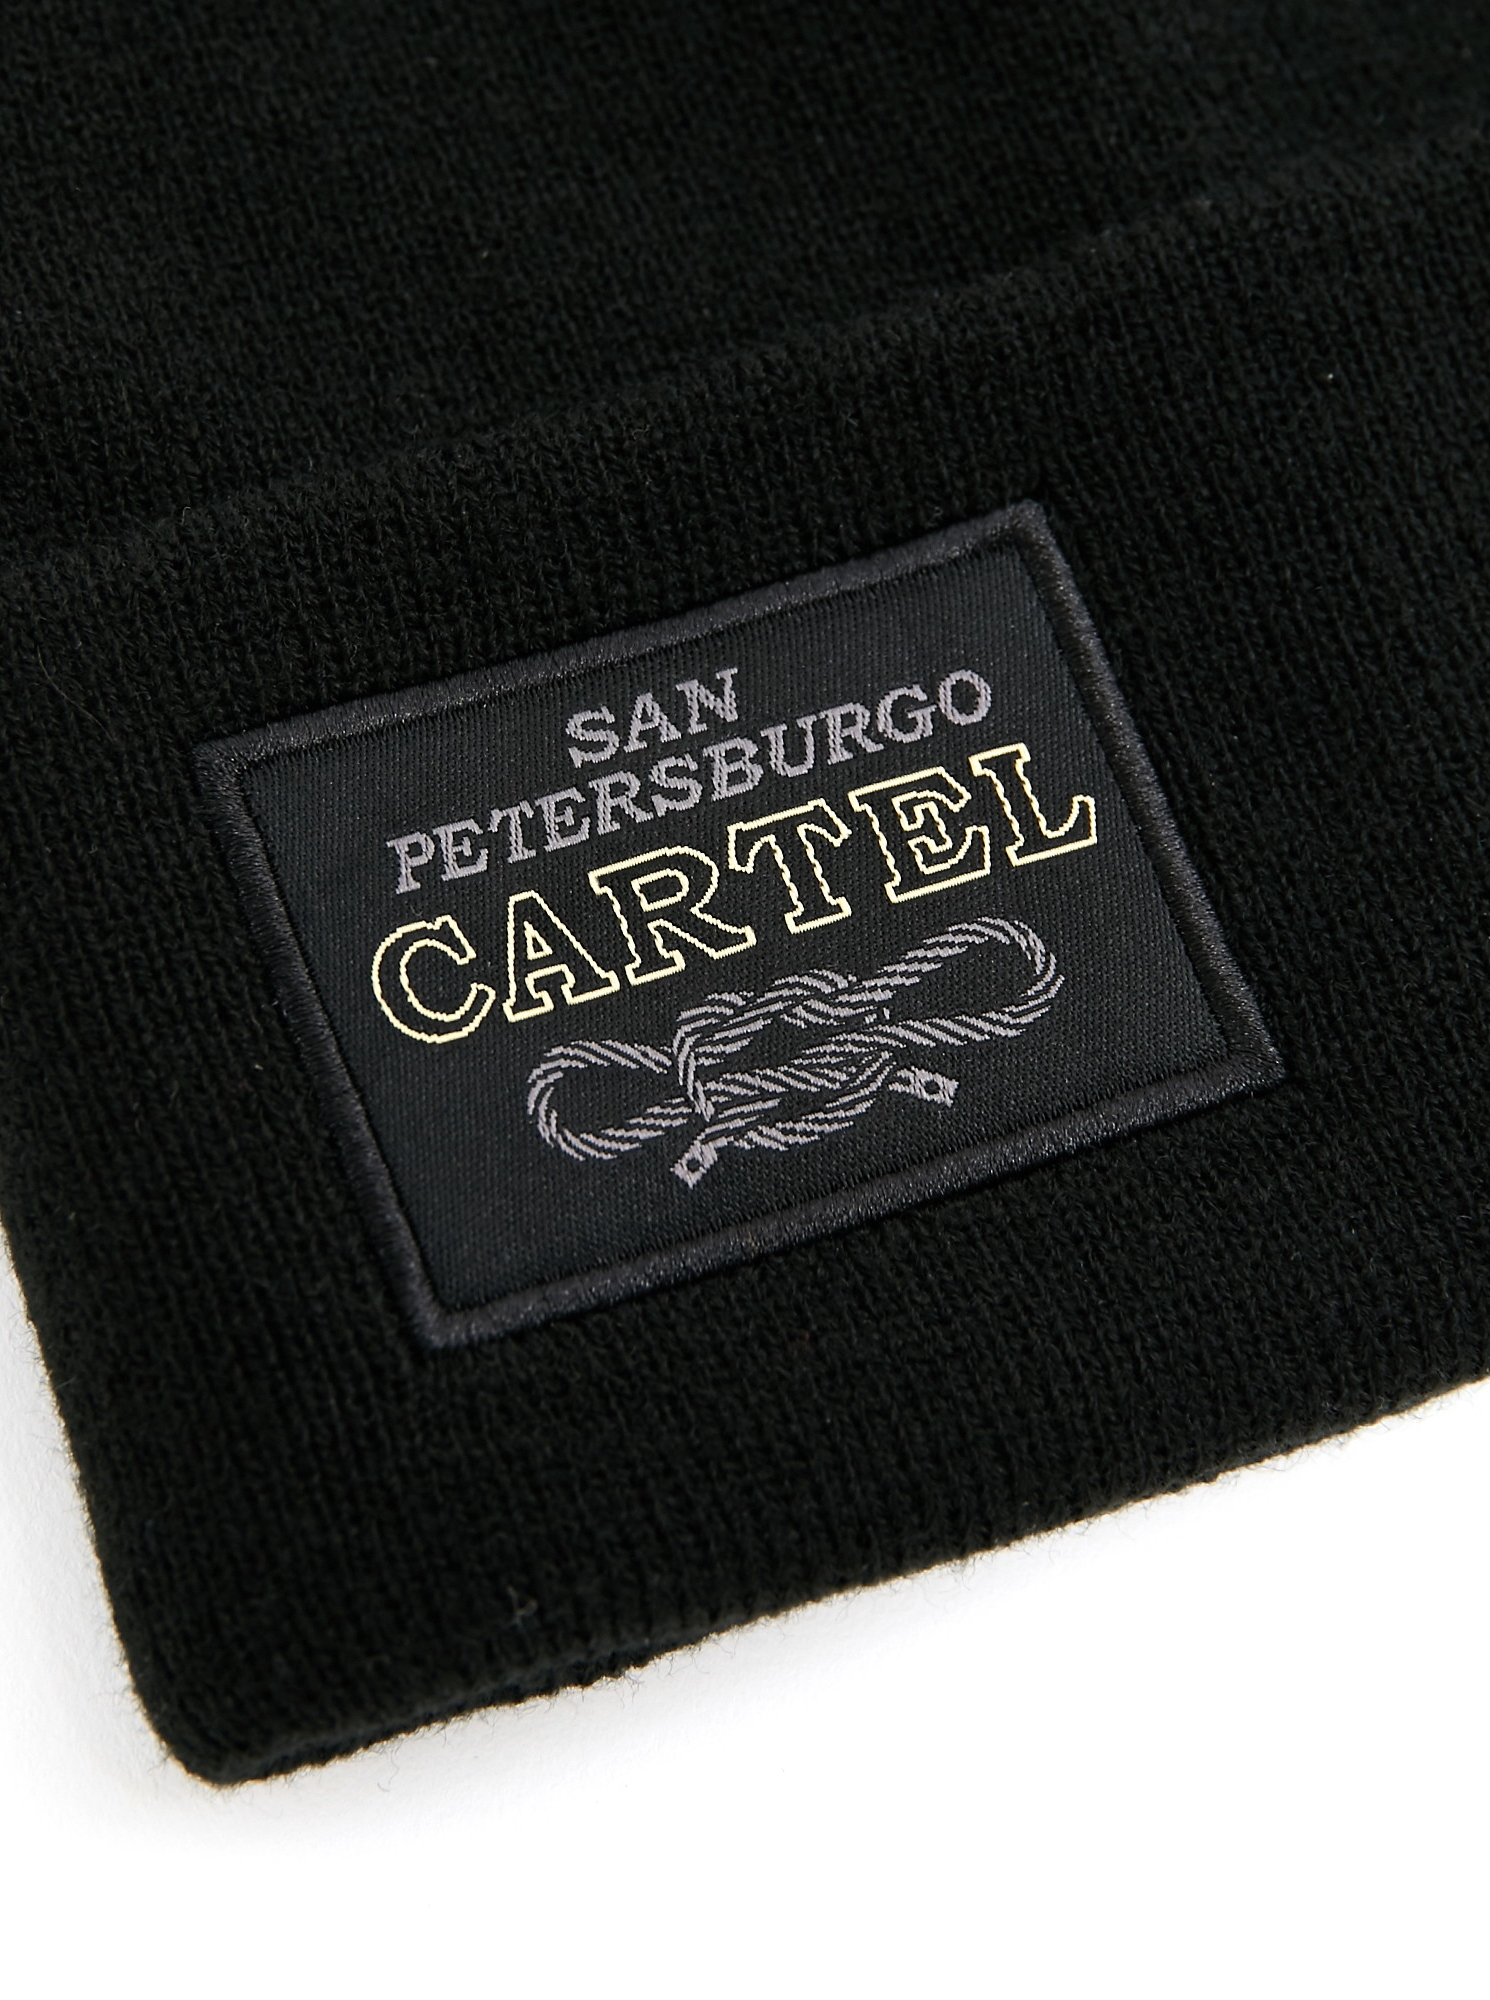 Шапка Trailhead HAT20-15-PTH-Cartel_BK Черная, HAT20-15-PTH-Cartel_BK, фото 2